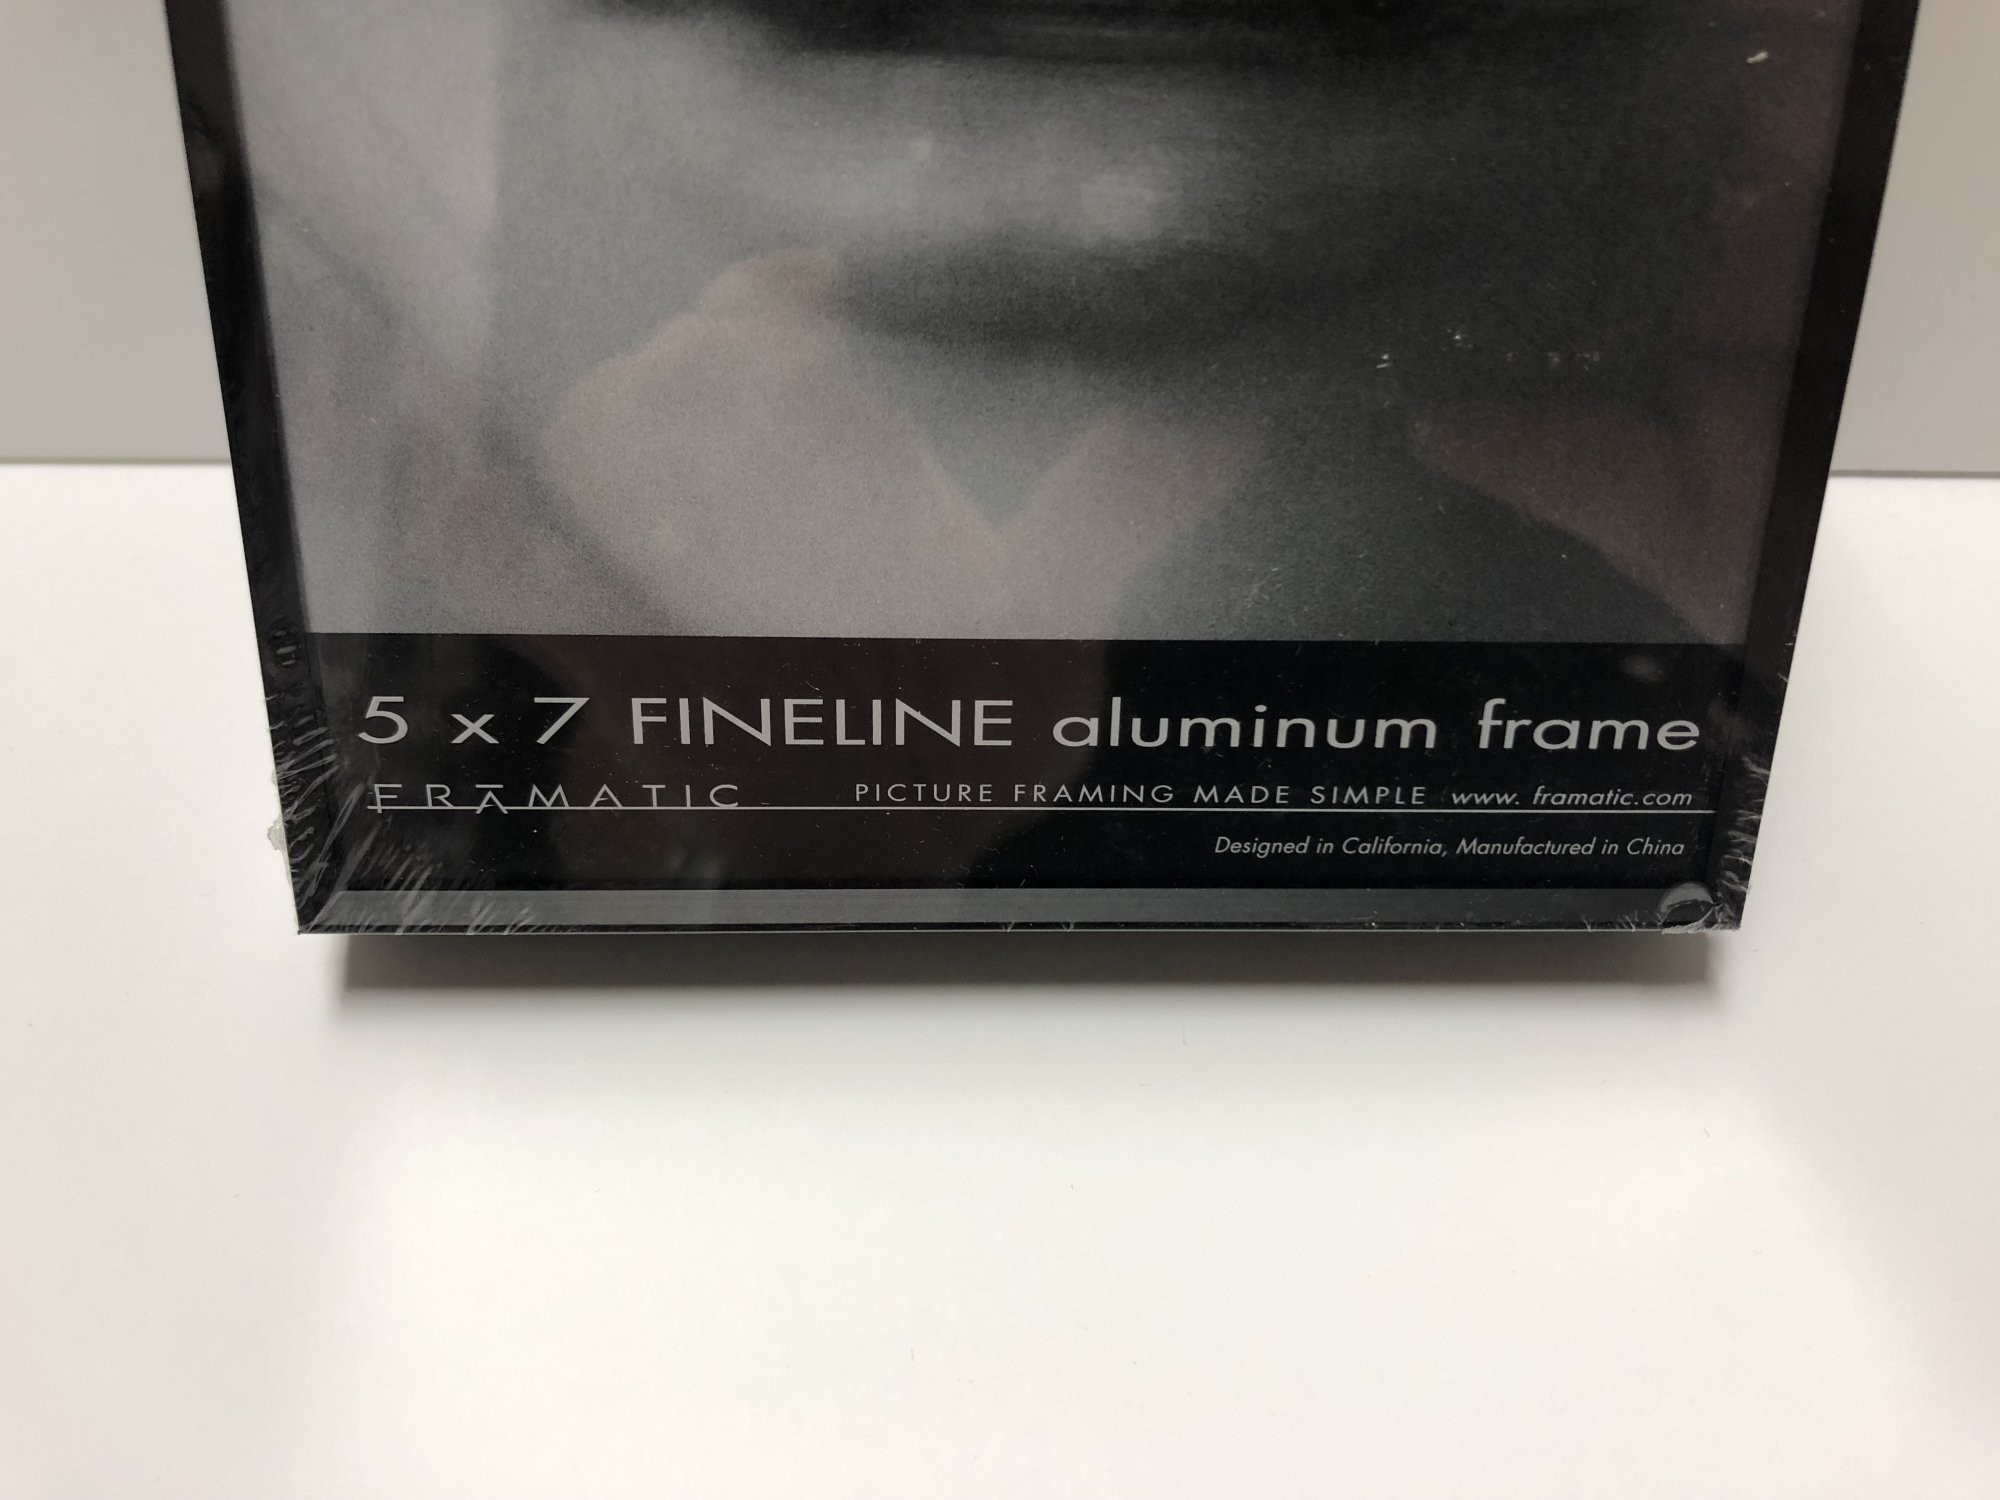 Framatic Fineline 5 x 7 Metal Readymade Frame